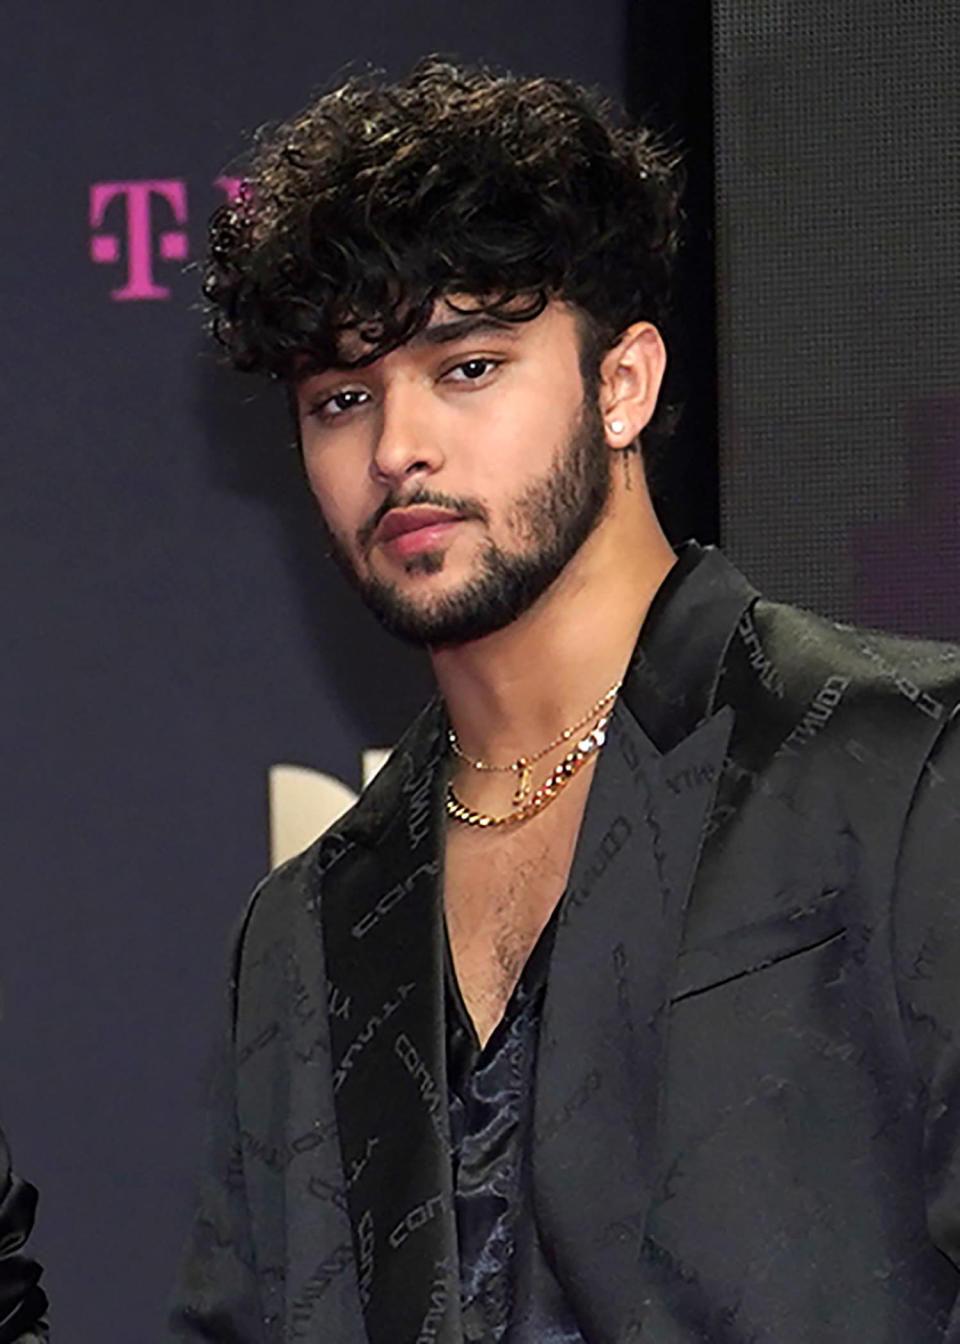 File - This Feb. 18, 2021, file photo shows Joel Pimentel, of CNCO, arriving at Premio Lo Nuestro in Miami. The Latin American boy band CNCO is downsizing. The group announced on its official Instagram page Sunday, May 9, 2021, that 22-year-old Pimentel is leaving the band, making the successful quintet a quartet. (AP Photo/Lynne Sladky, File)